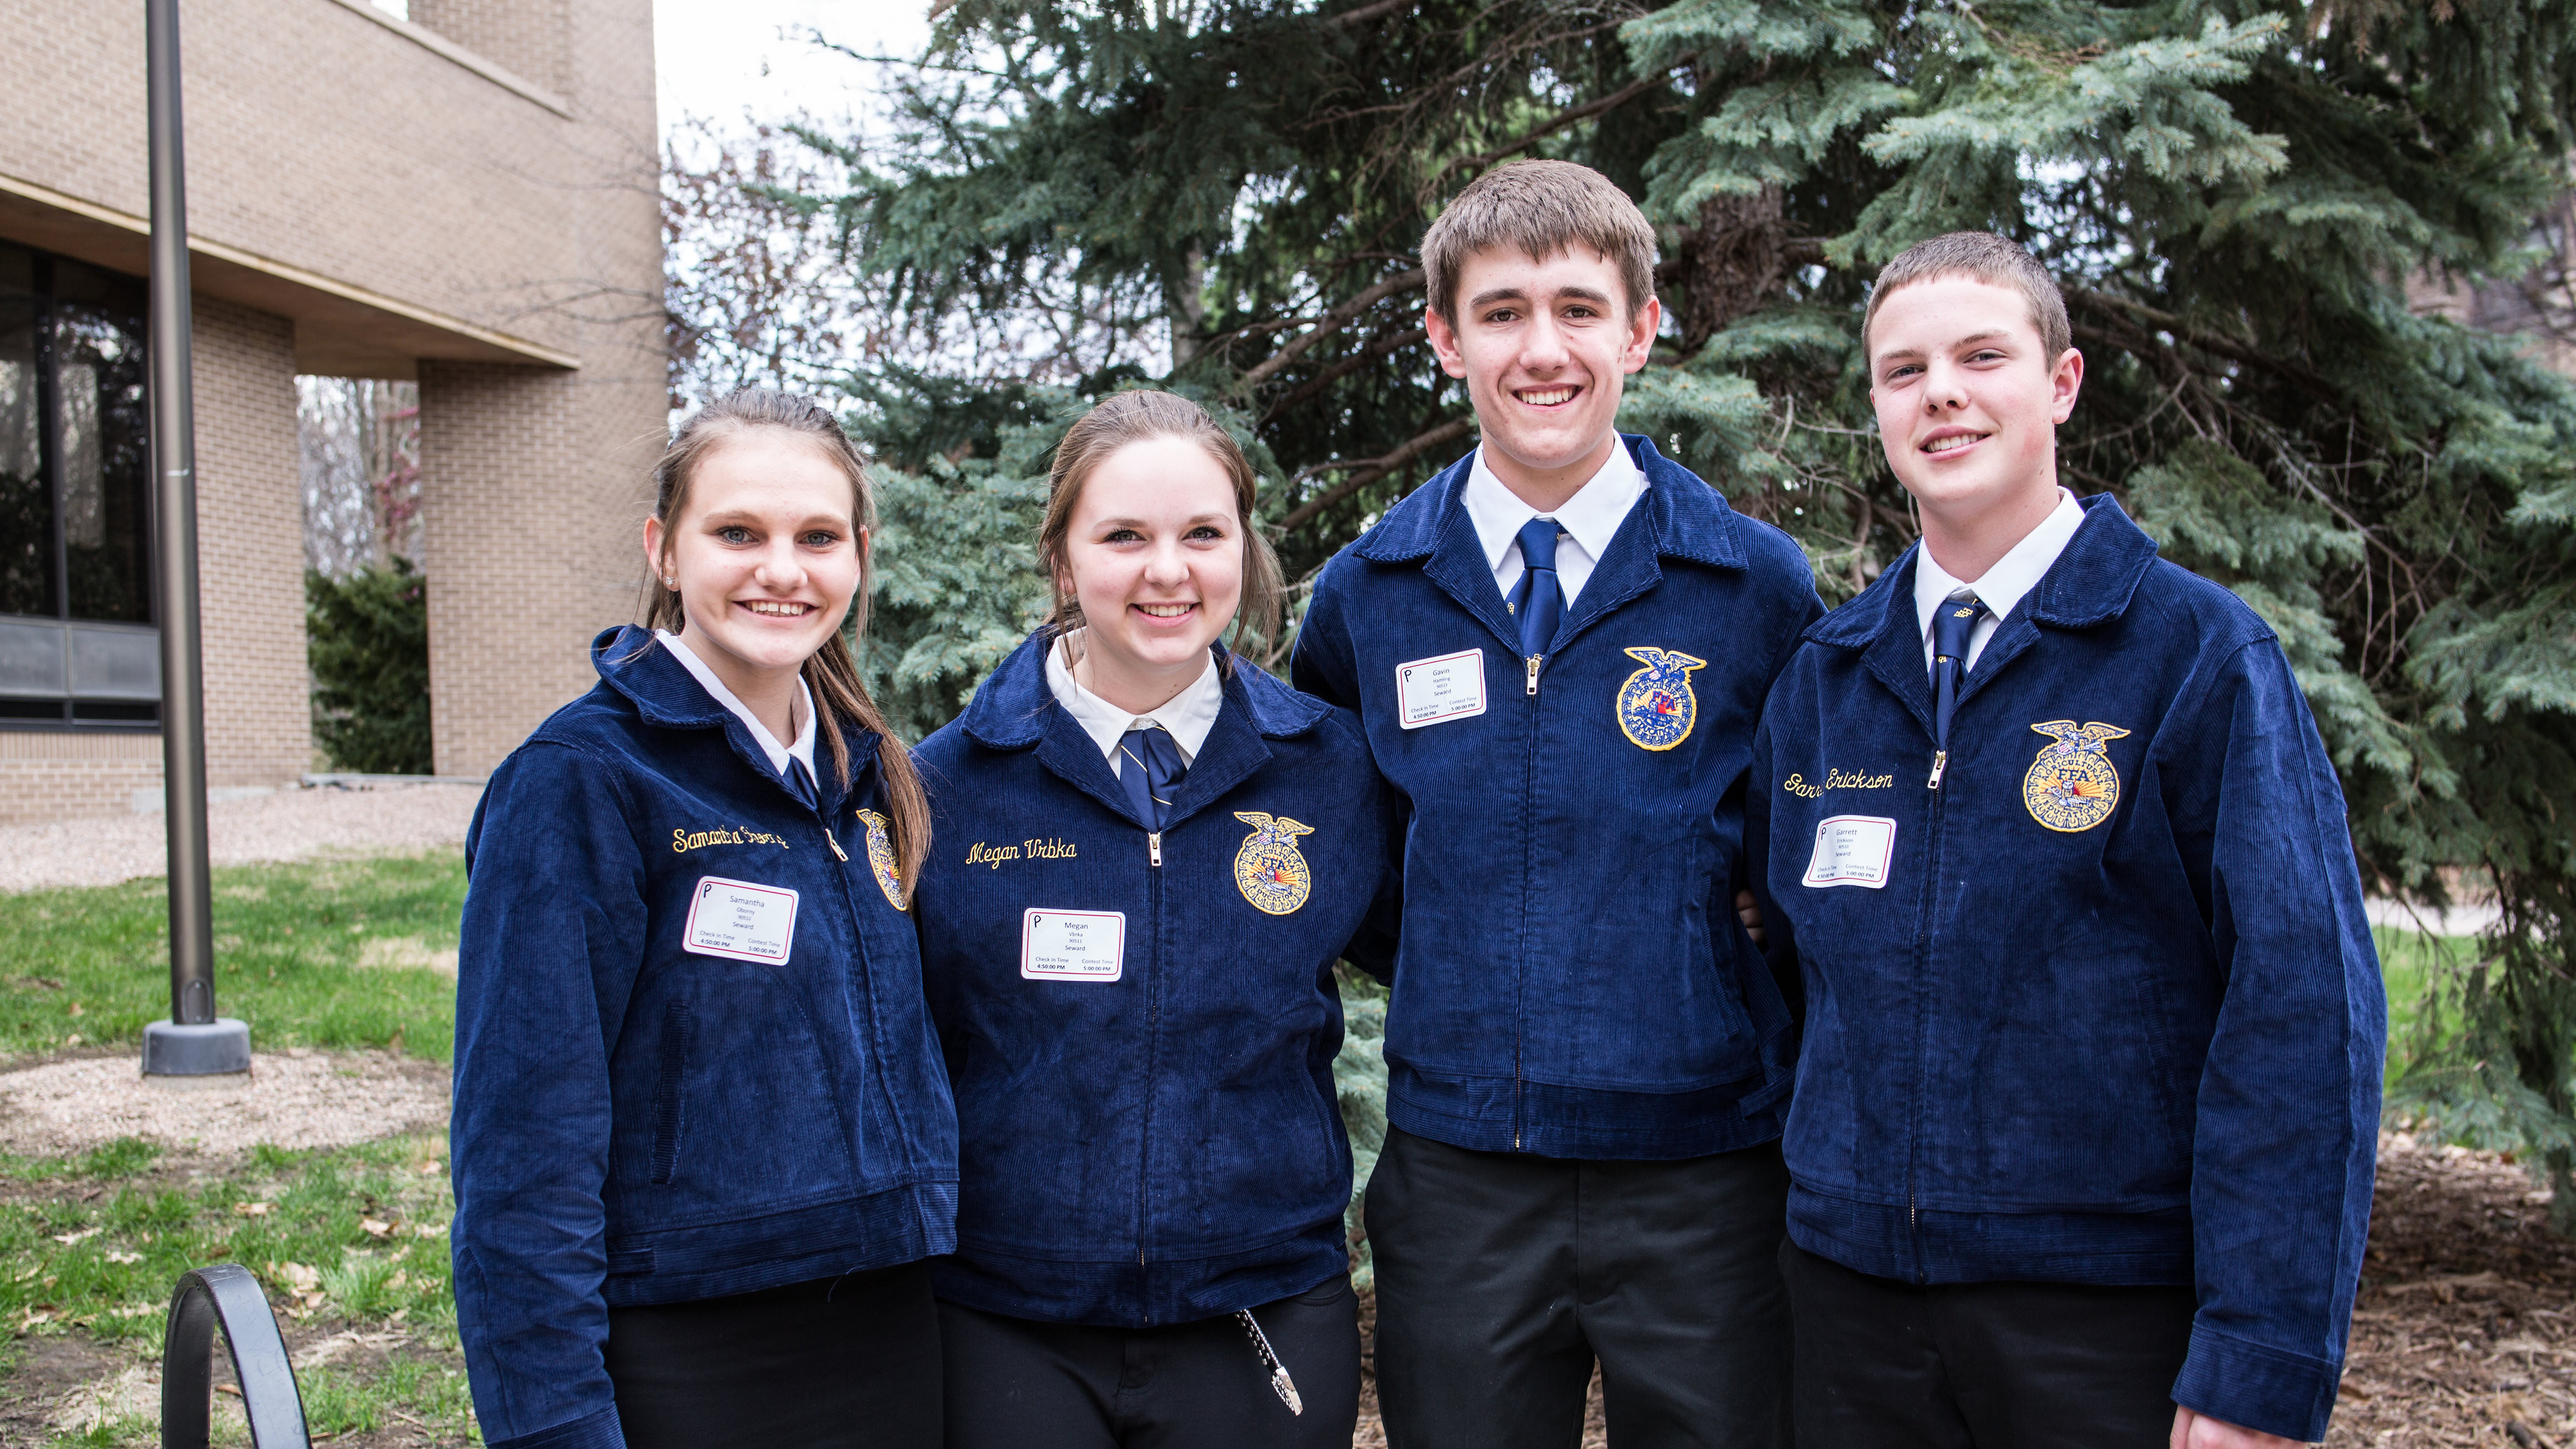 One Week Left to Donate an FFA Jacket